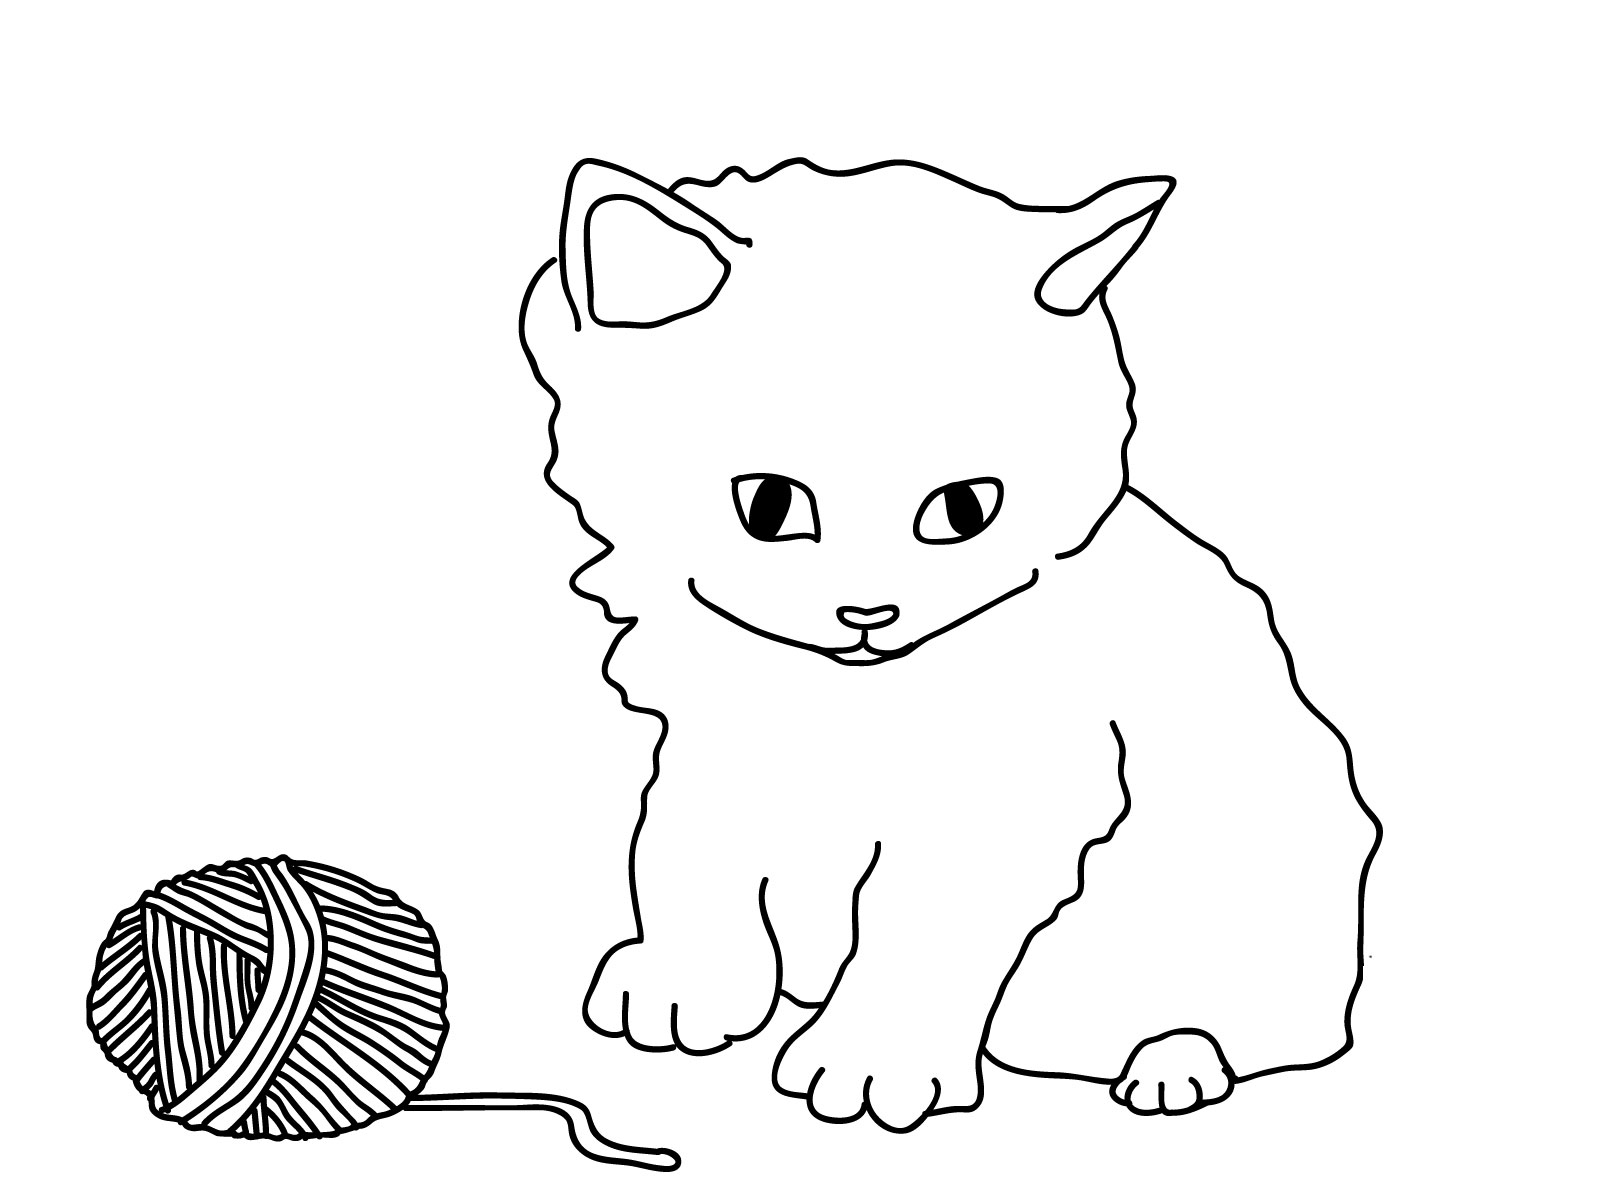 pictures of cats and kittens to color free printable cat coloring pages for kids to pictures cats kittens color of and